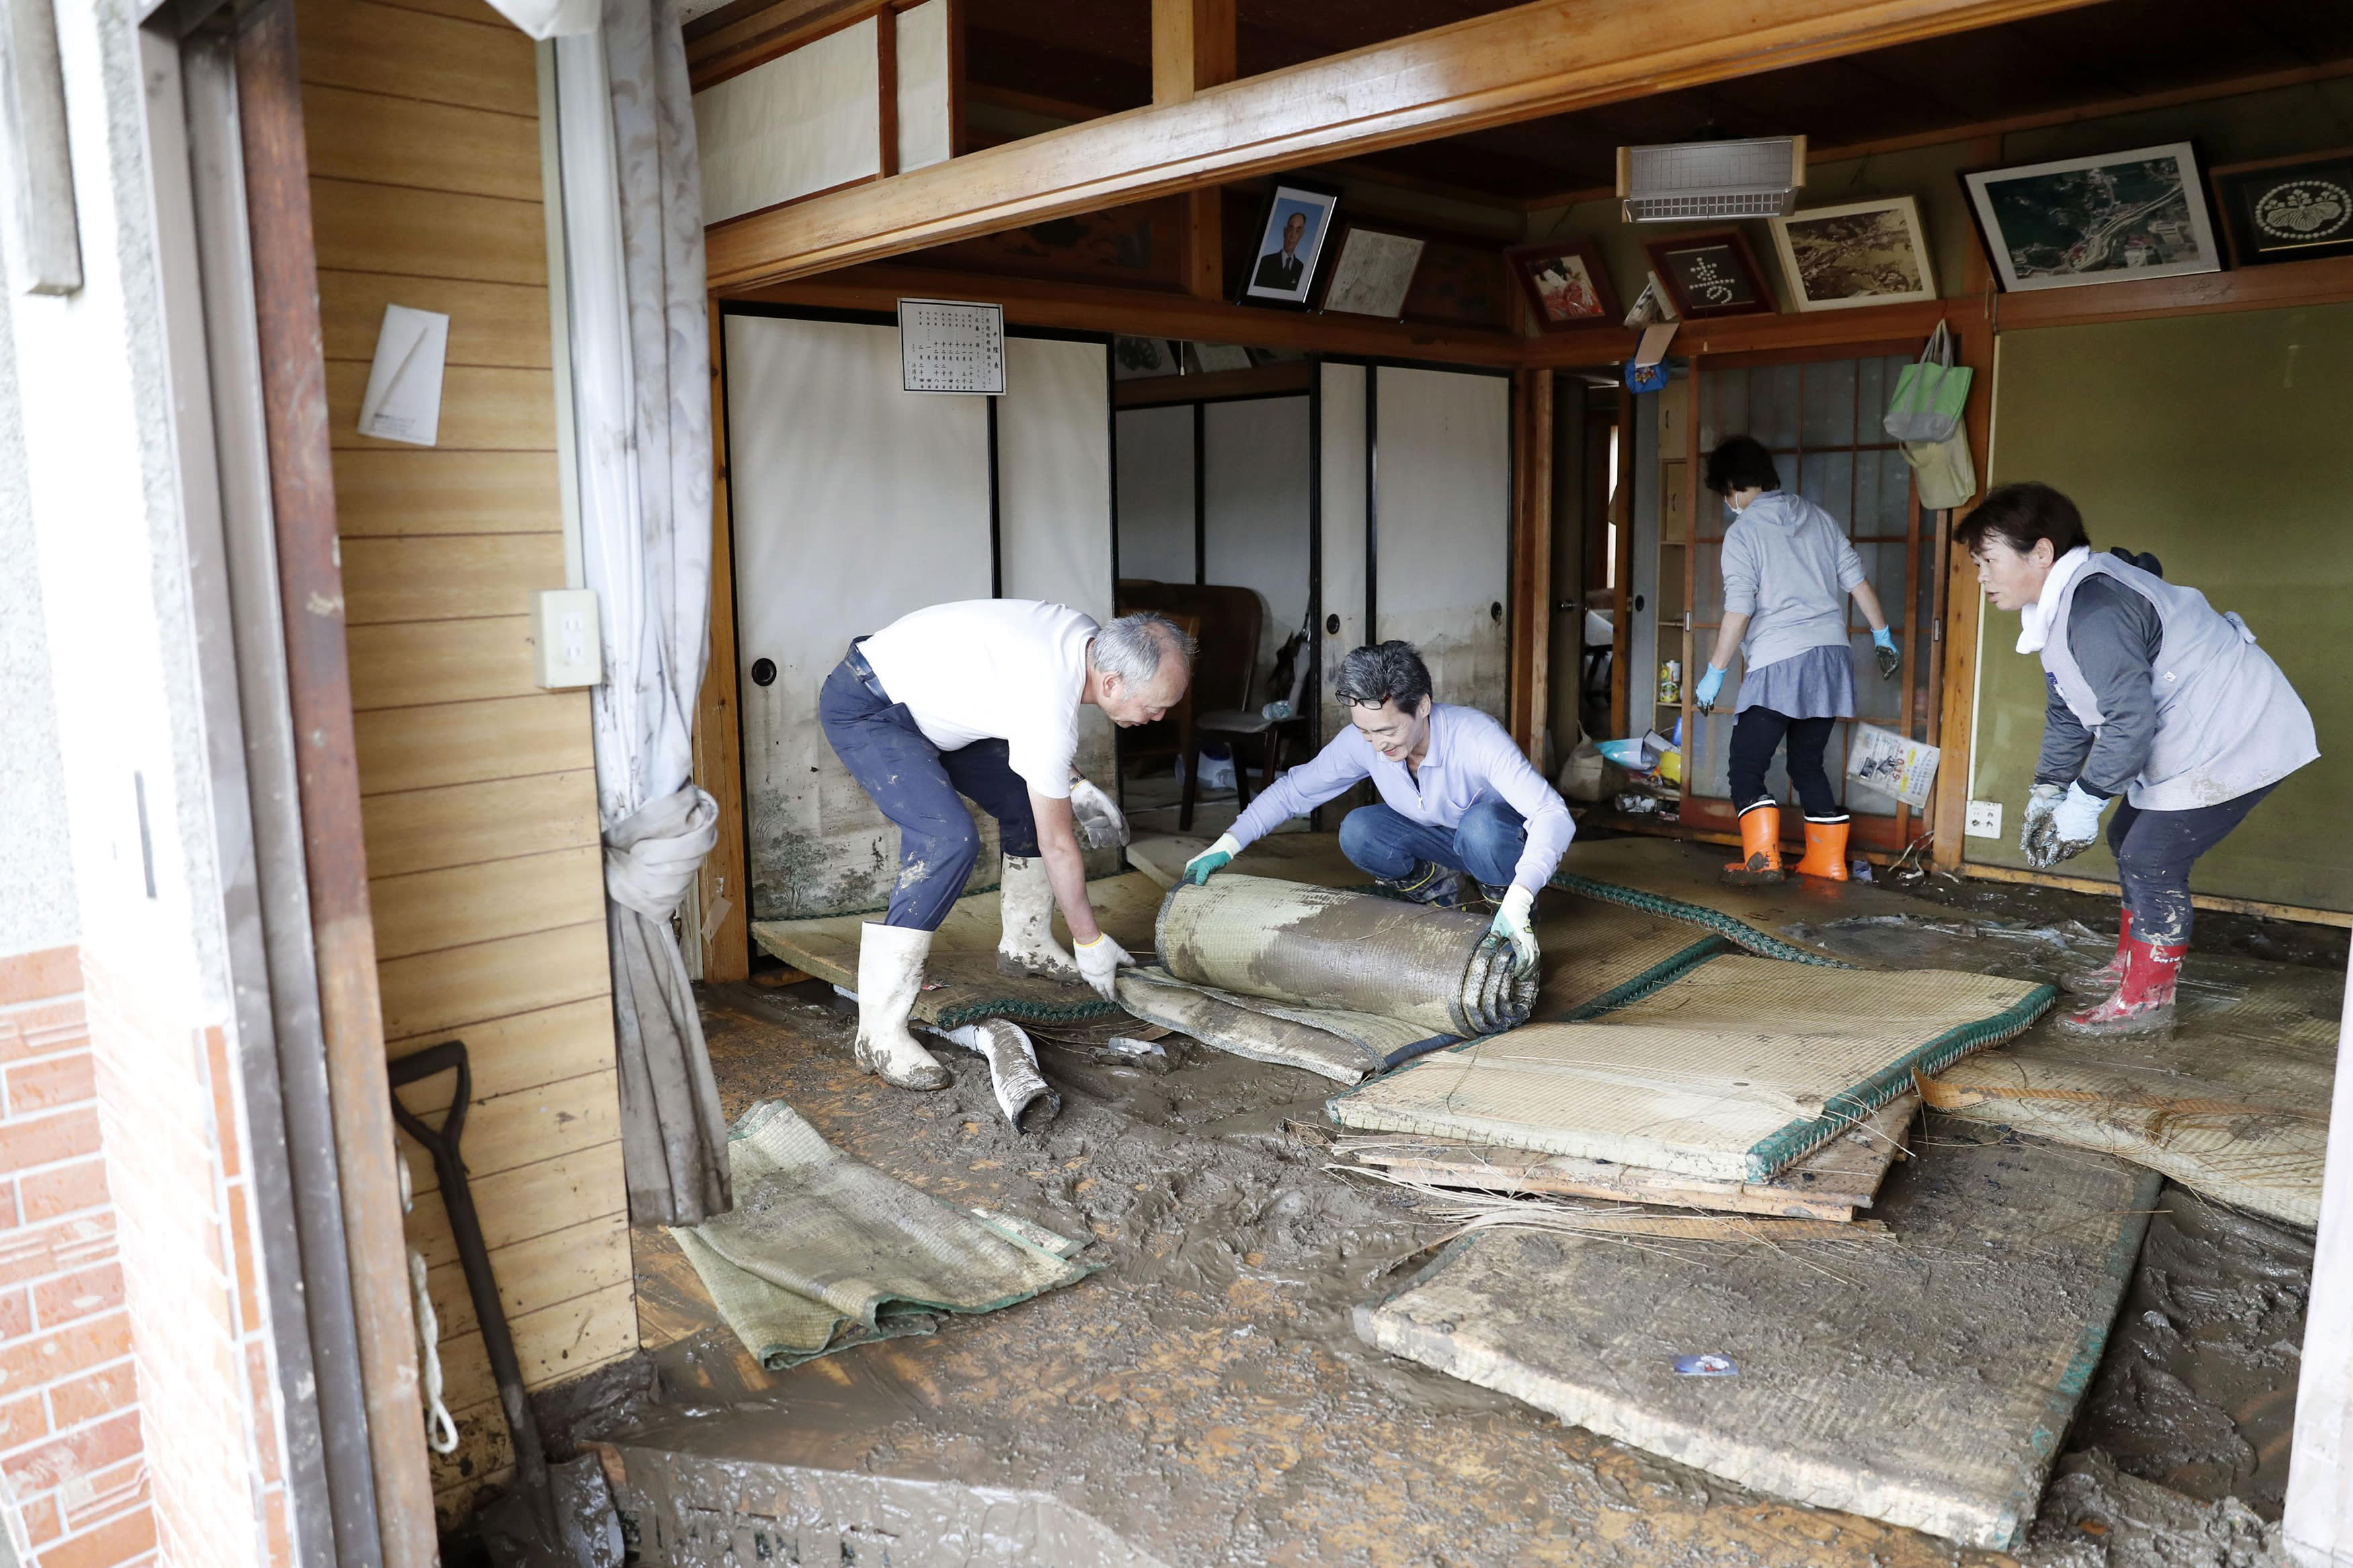 Residents clean a house damaged by Typhoon Hagibis, in Marumori town, Miyagi prefecture, Japan Monday, Oct. 14, 2019. Rescue crews in Japan dug through mudslides and searched near swollen rivers Monday as they looked for those missing from the typhoon that caused serious damage in central and northern Japan. (Kyodo News via AP)